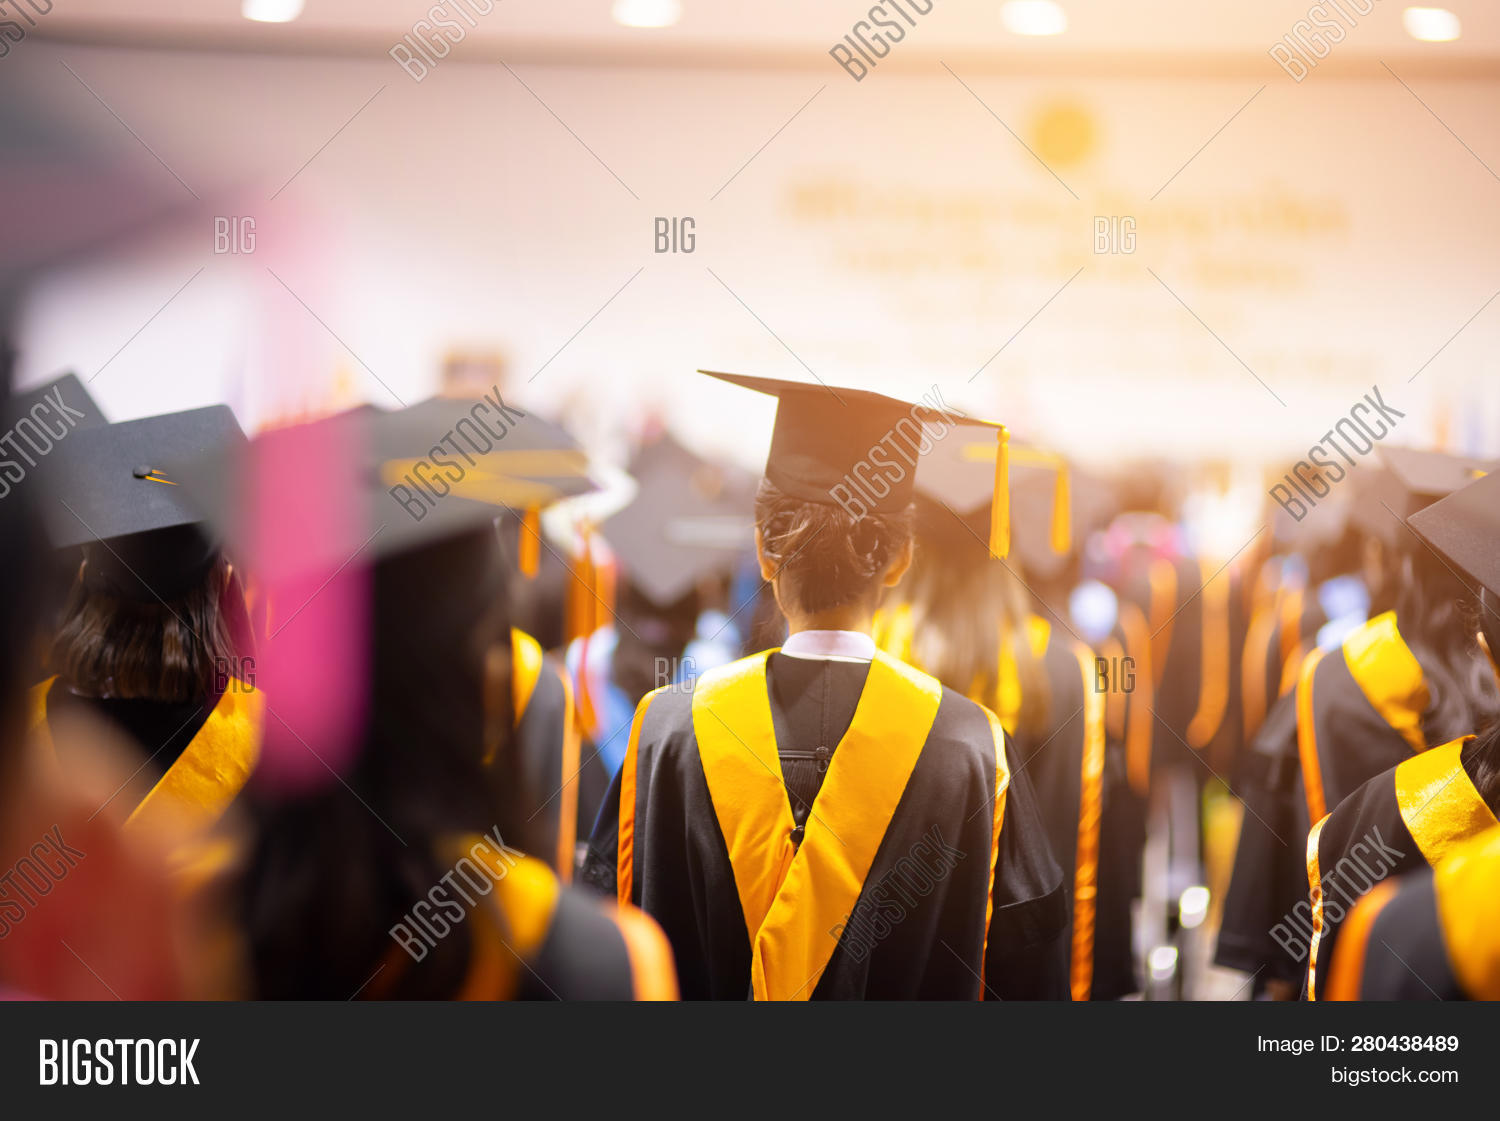 academic,achievement,african,air,asian,bachelor,background,black,board,cap,celebrate,celebration,ceremony,cheerful,college,commencement,degree,diploma,education,female,gown,grad,graduates,graduating,graduation,group,happy,hat,high,knowledge,mortar,mortarboard,people,school,students,success,throwing,university,young